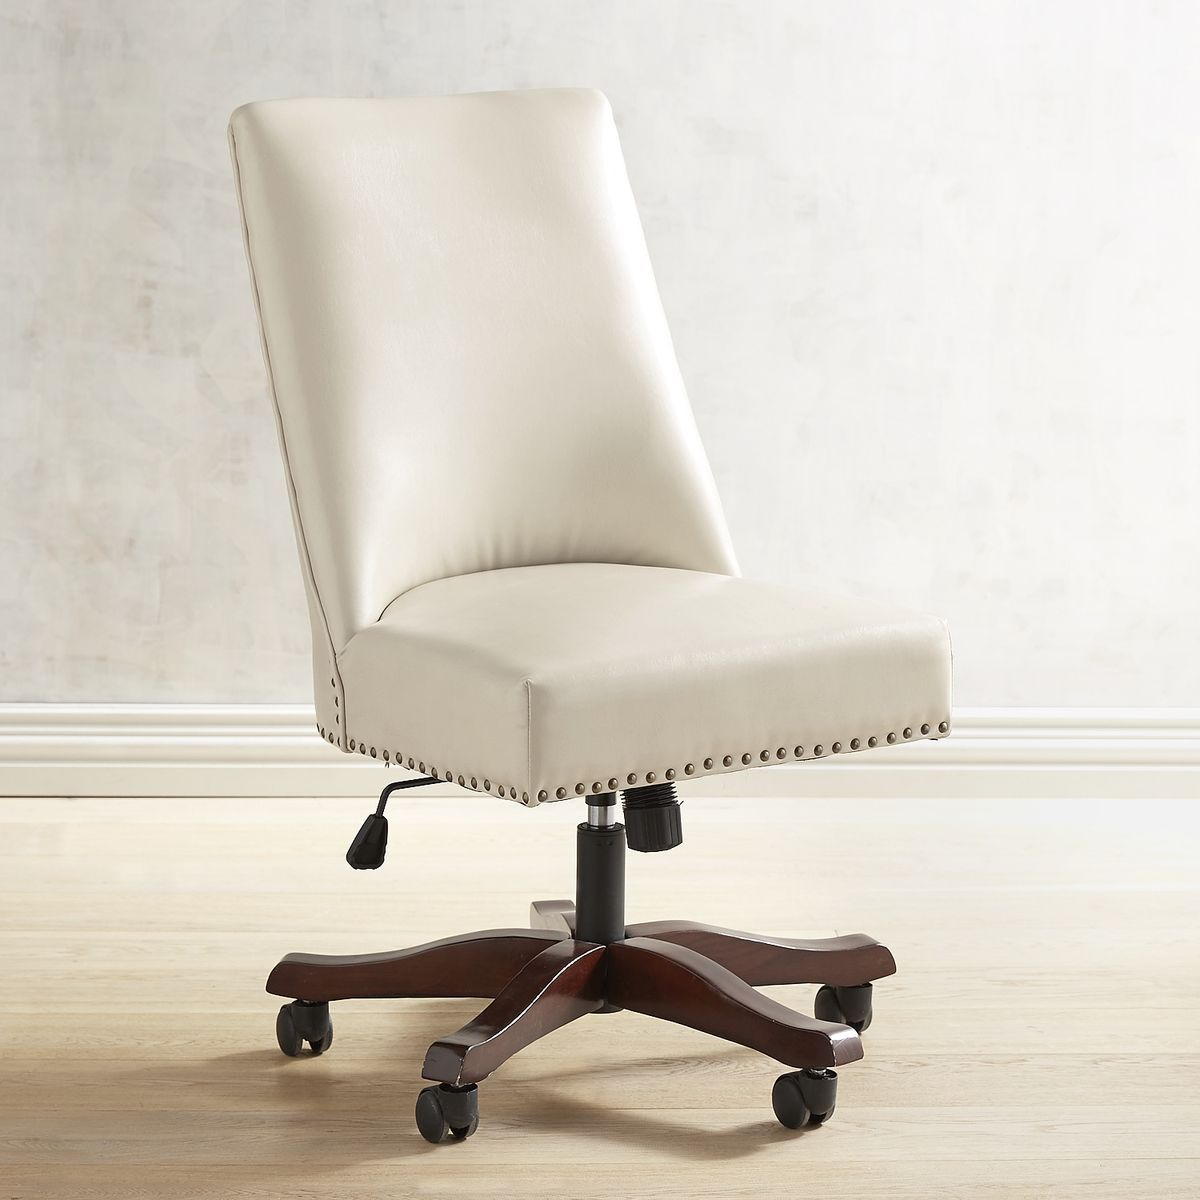 Captivating Corinne Ivory Swivel Desk Chair